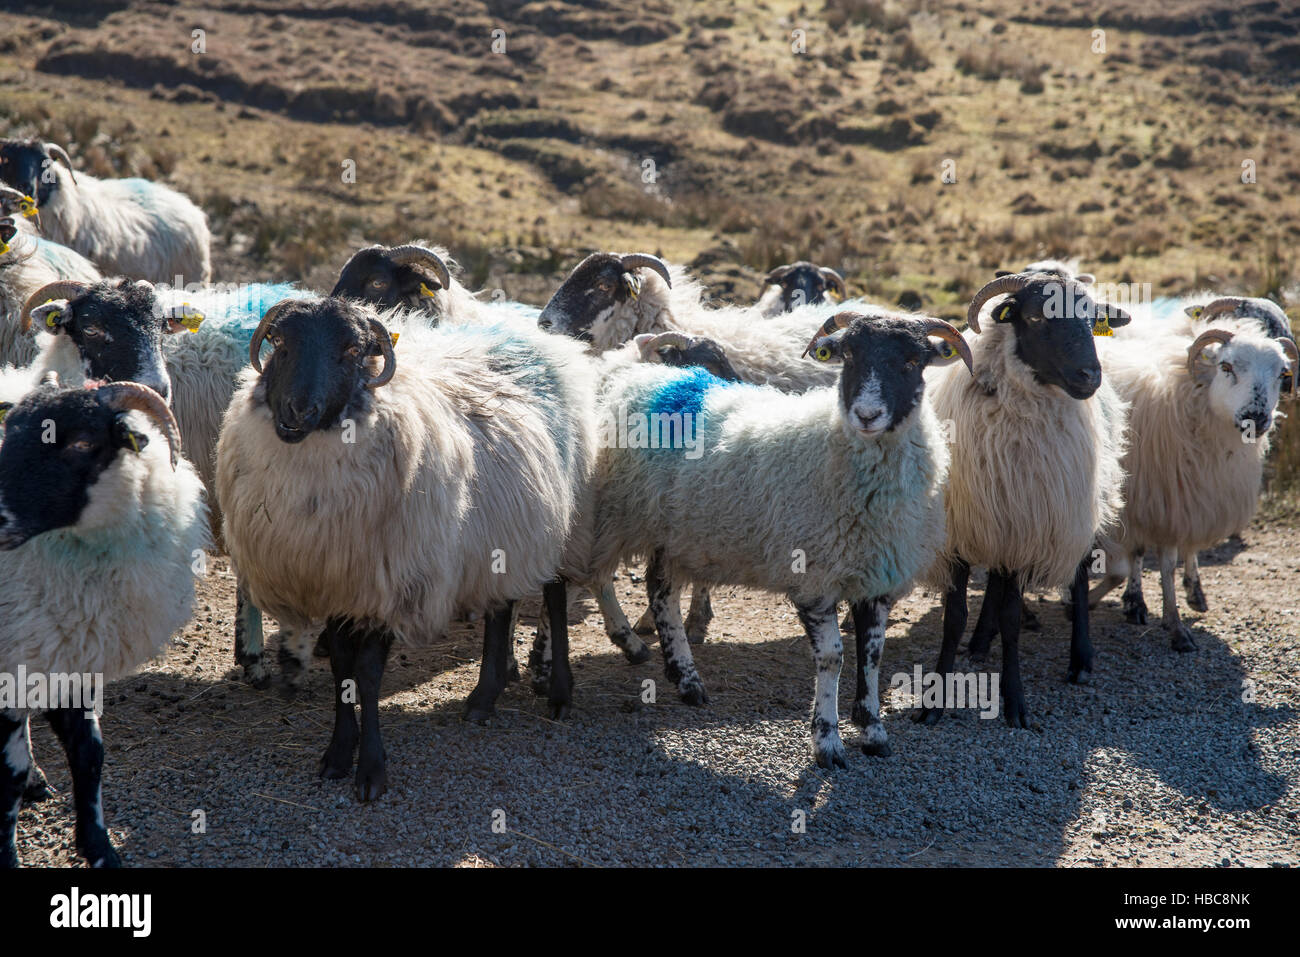 Flock of painted sheep on the side road of west coast of Ireland. - Stock Image